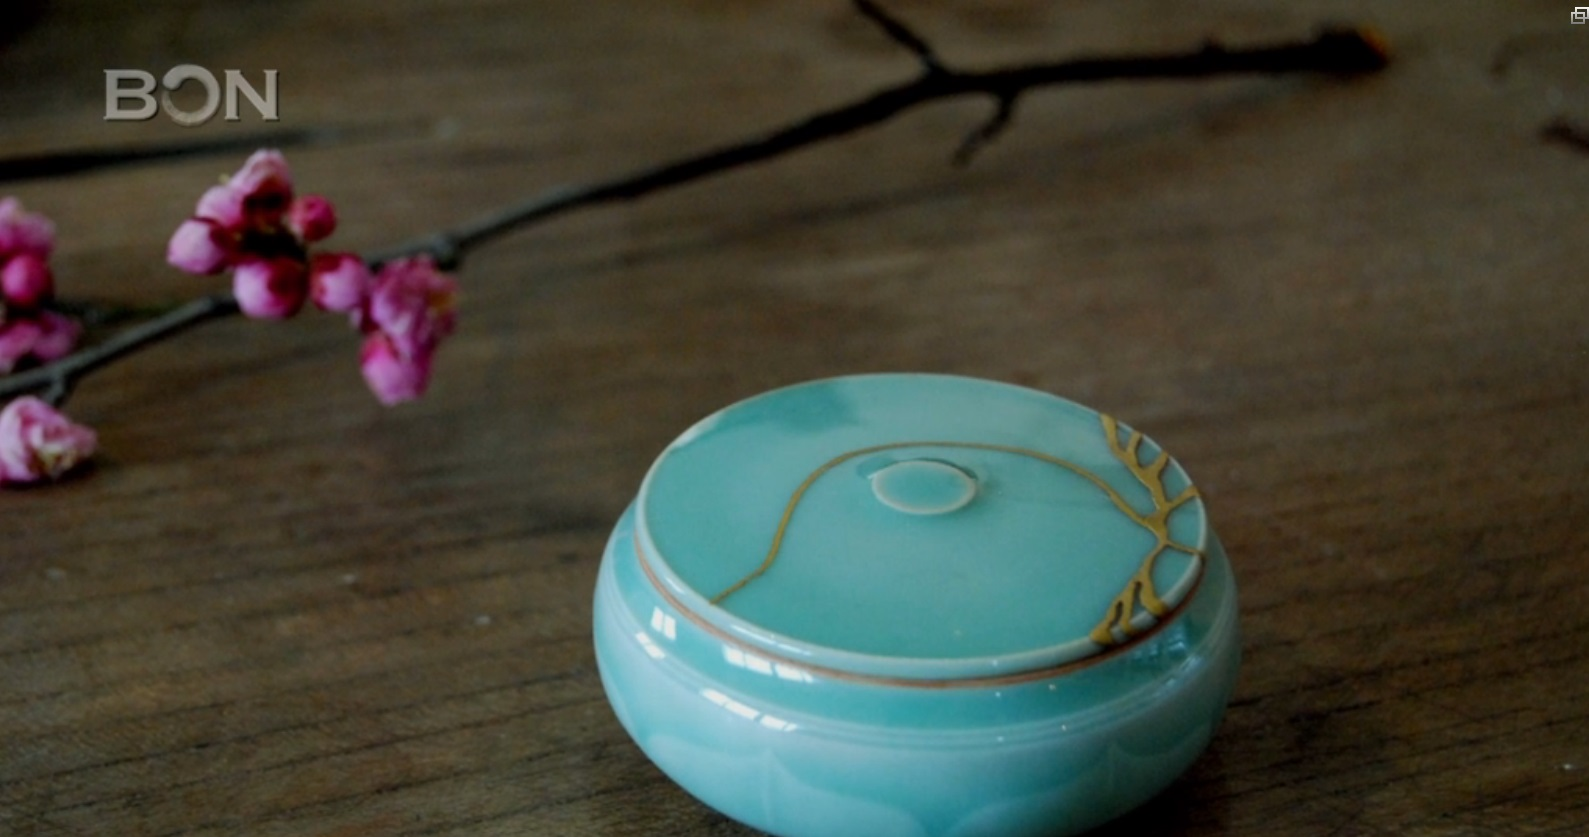 A celadon dish repaired with gold by Deng Bing. The art of Jin Shan uses a philosophy of embracing the flawed or imperfect.